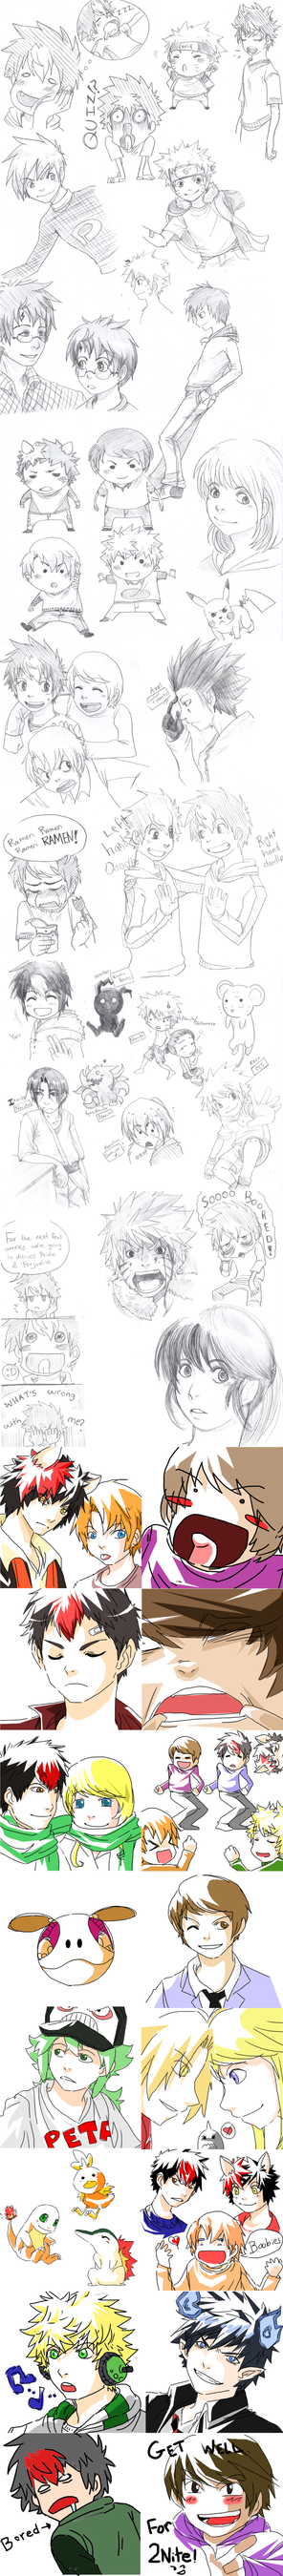 Sketch Dump Returns by AmukaUroy